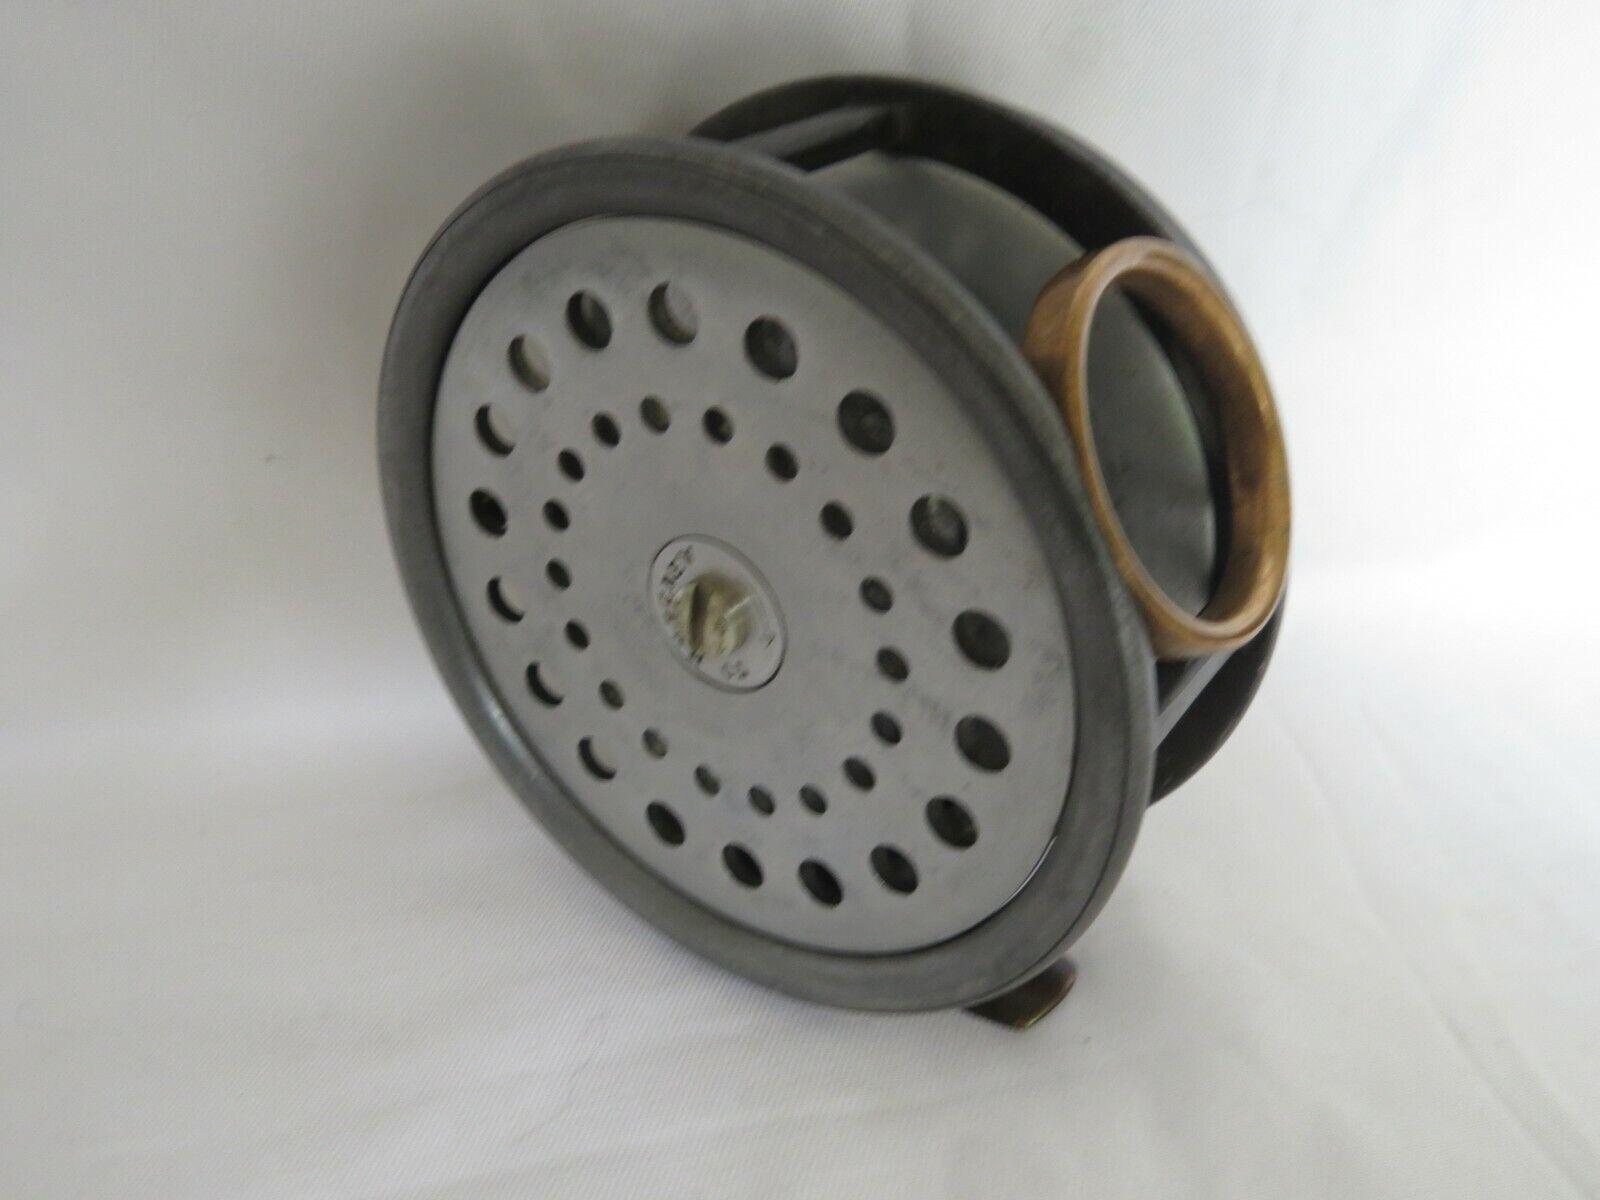 A VERY GOOD VINTAGE ALEX MARTIN 4 1 4  THISTLE 3 PIECE SALMON FLY REEL R.H.W